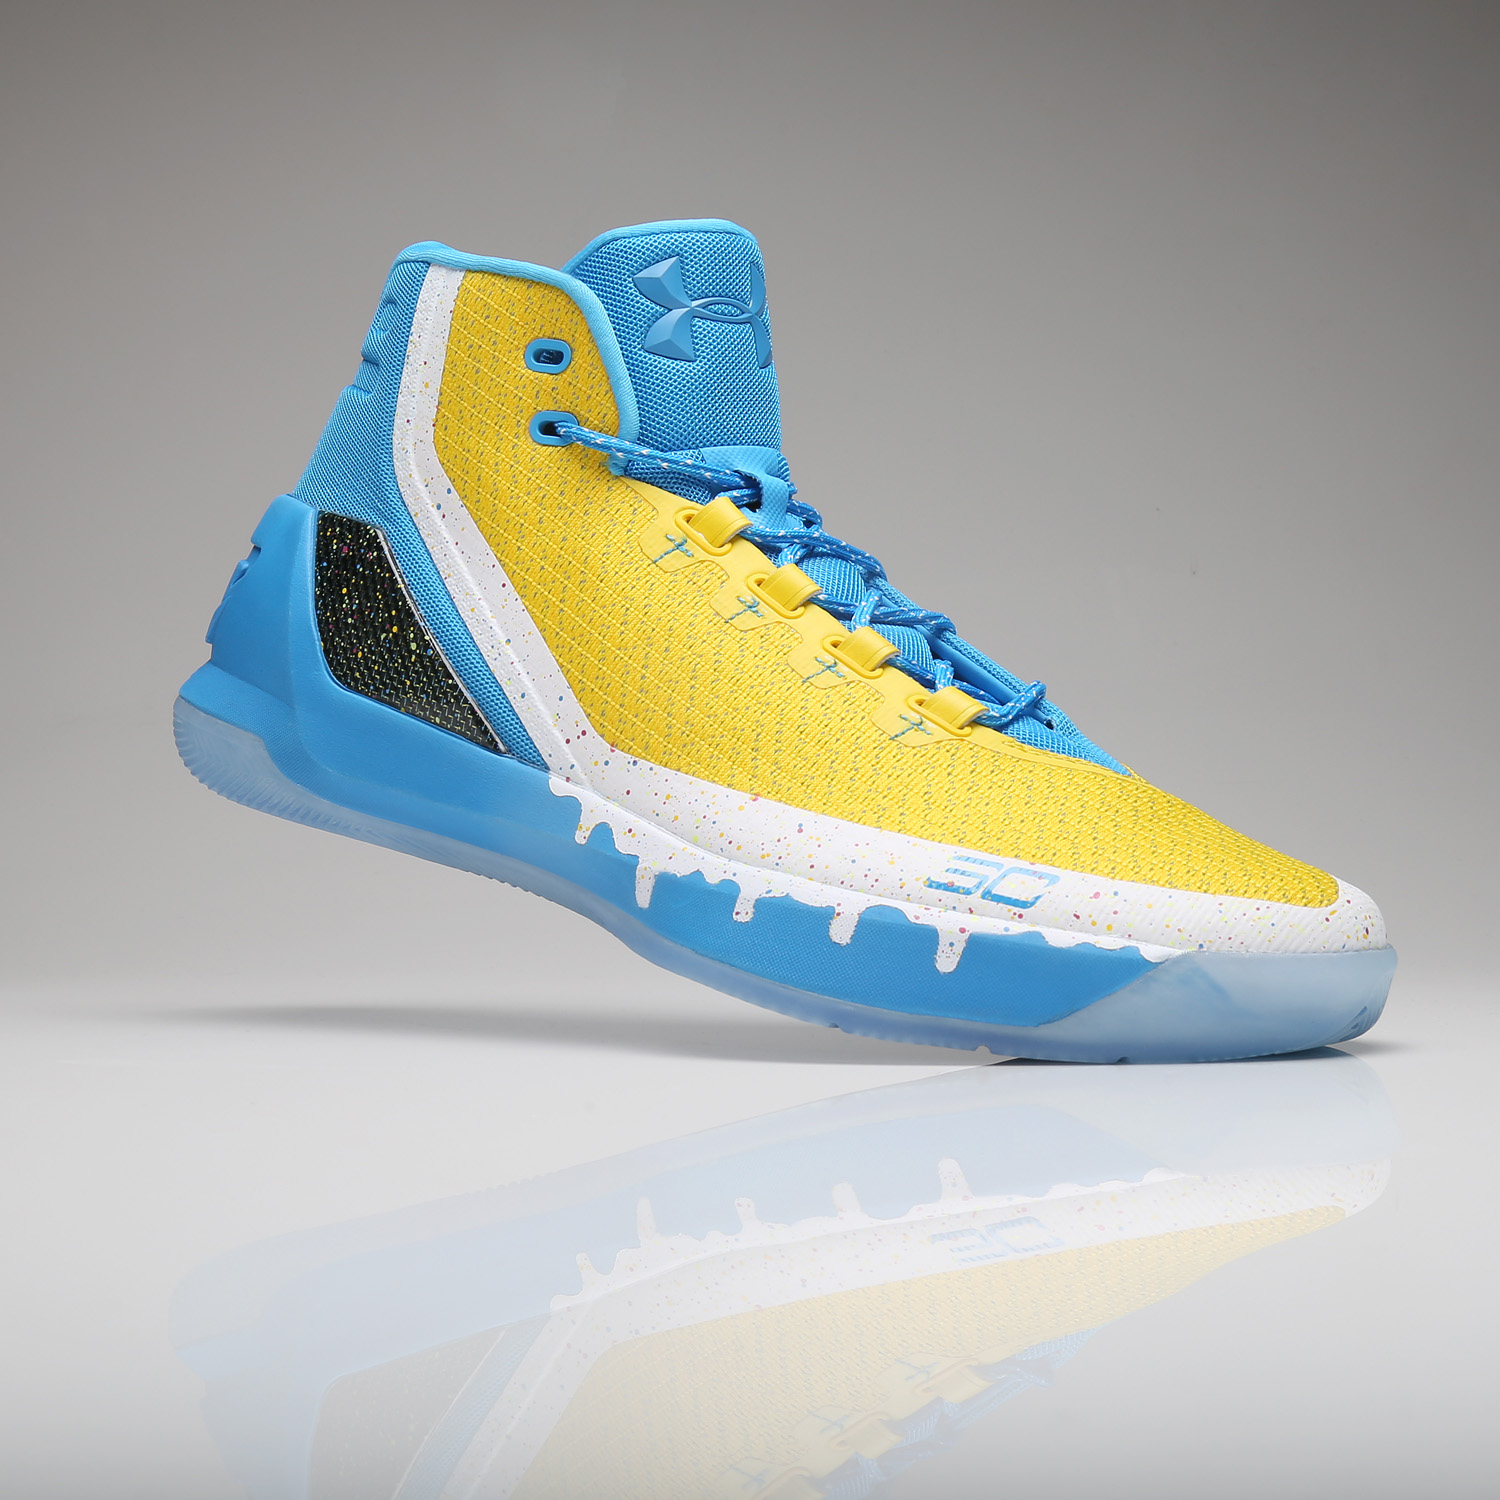 Curry Birthday Cake Shoes